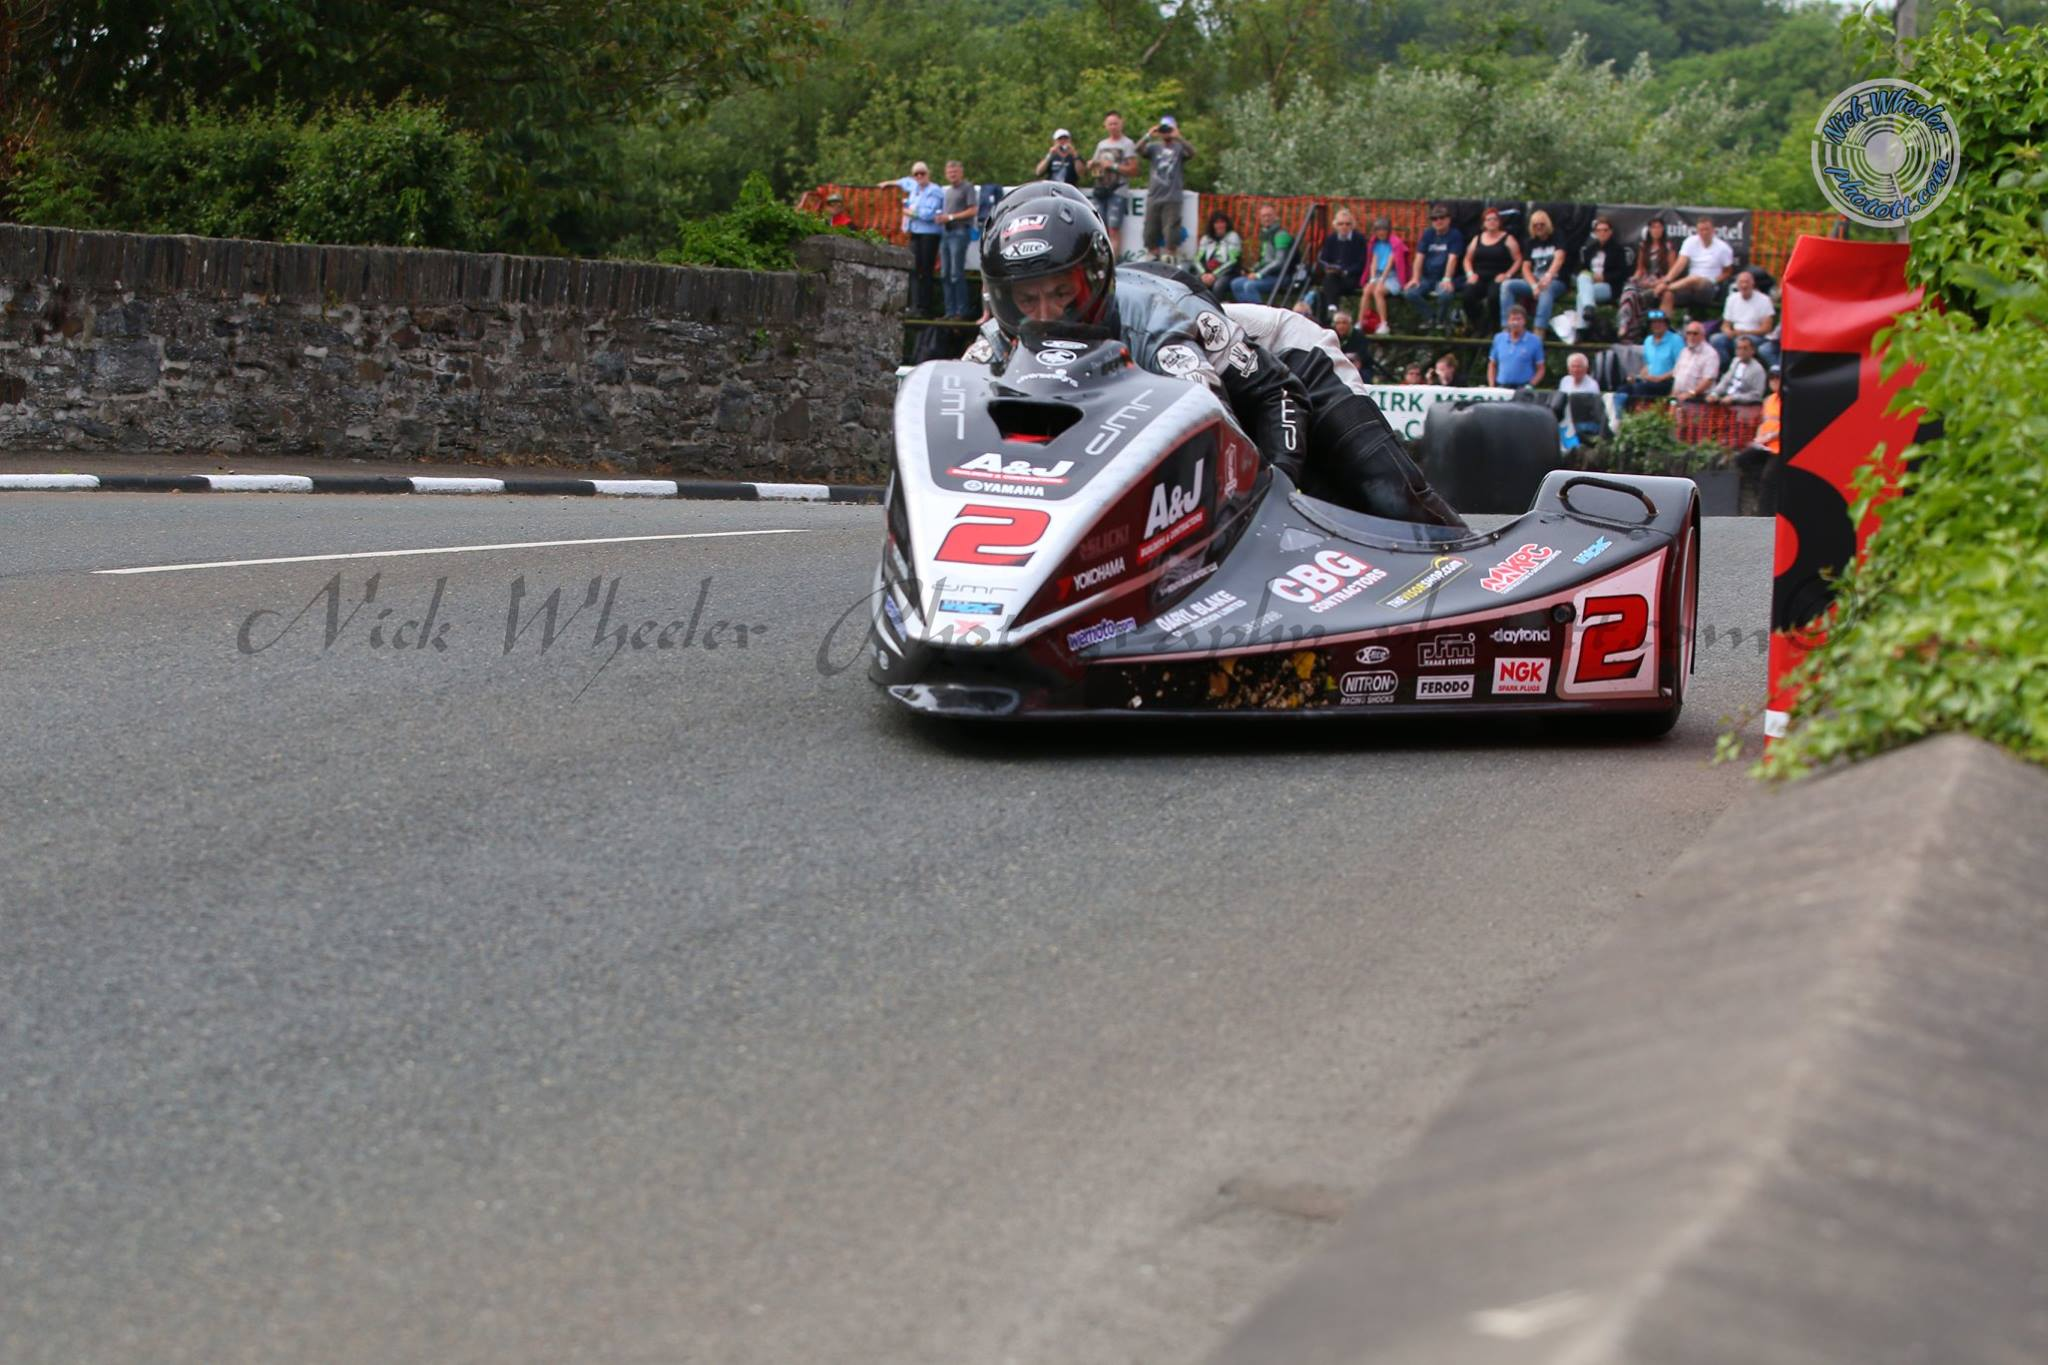 Mountain Course Legend Molyneux Set For New Challenge With Up Coming Three Wheeling Star Payne